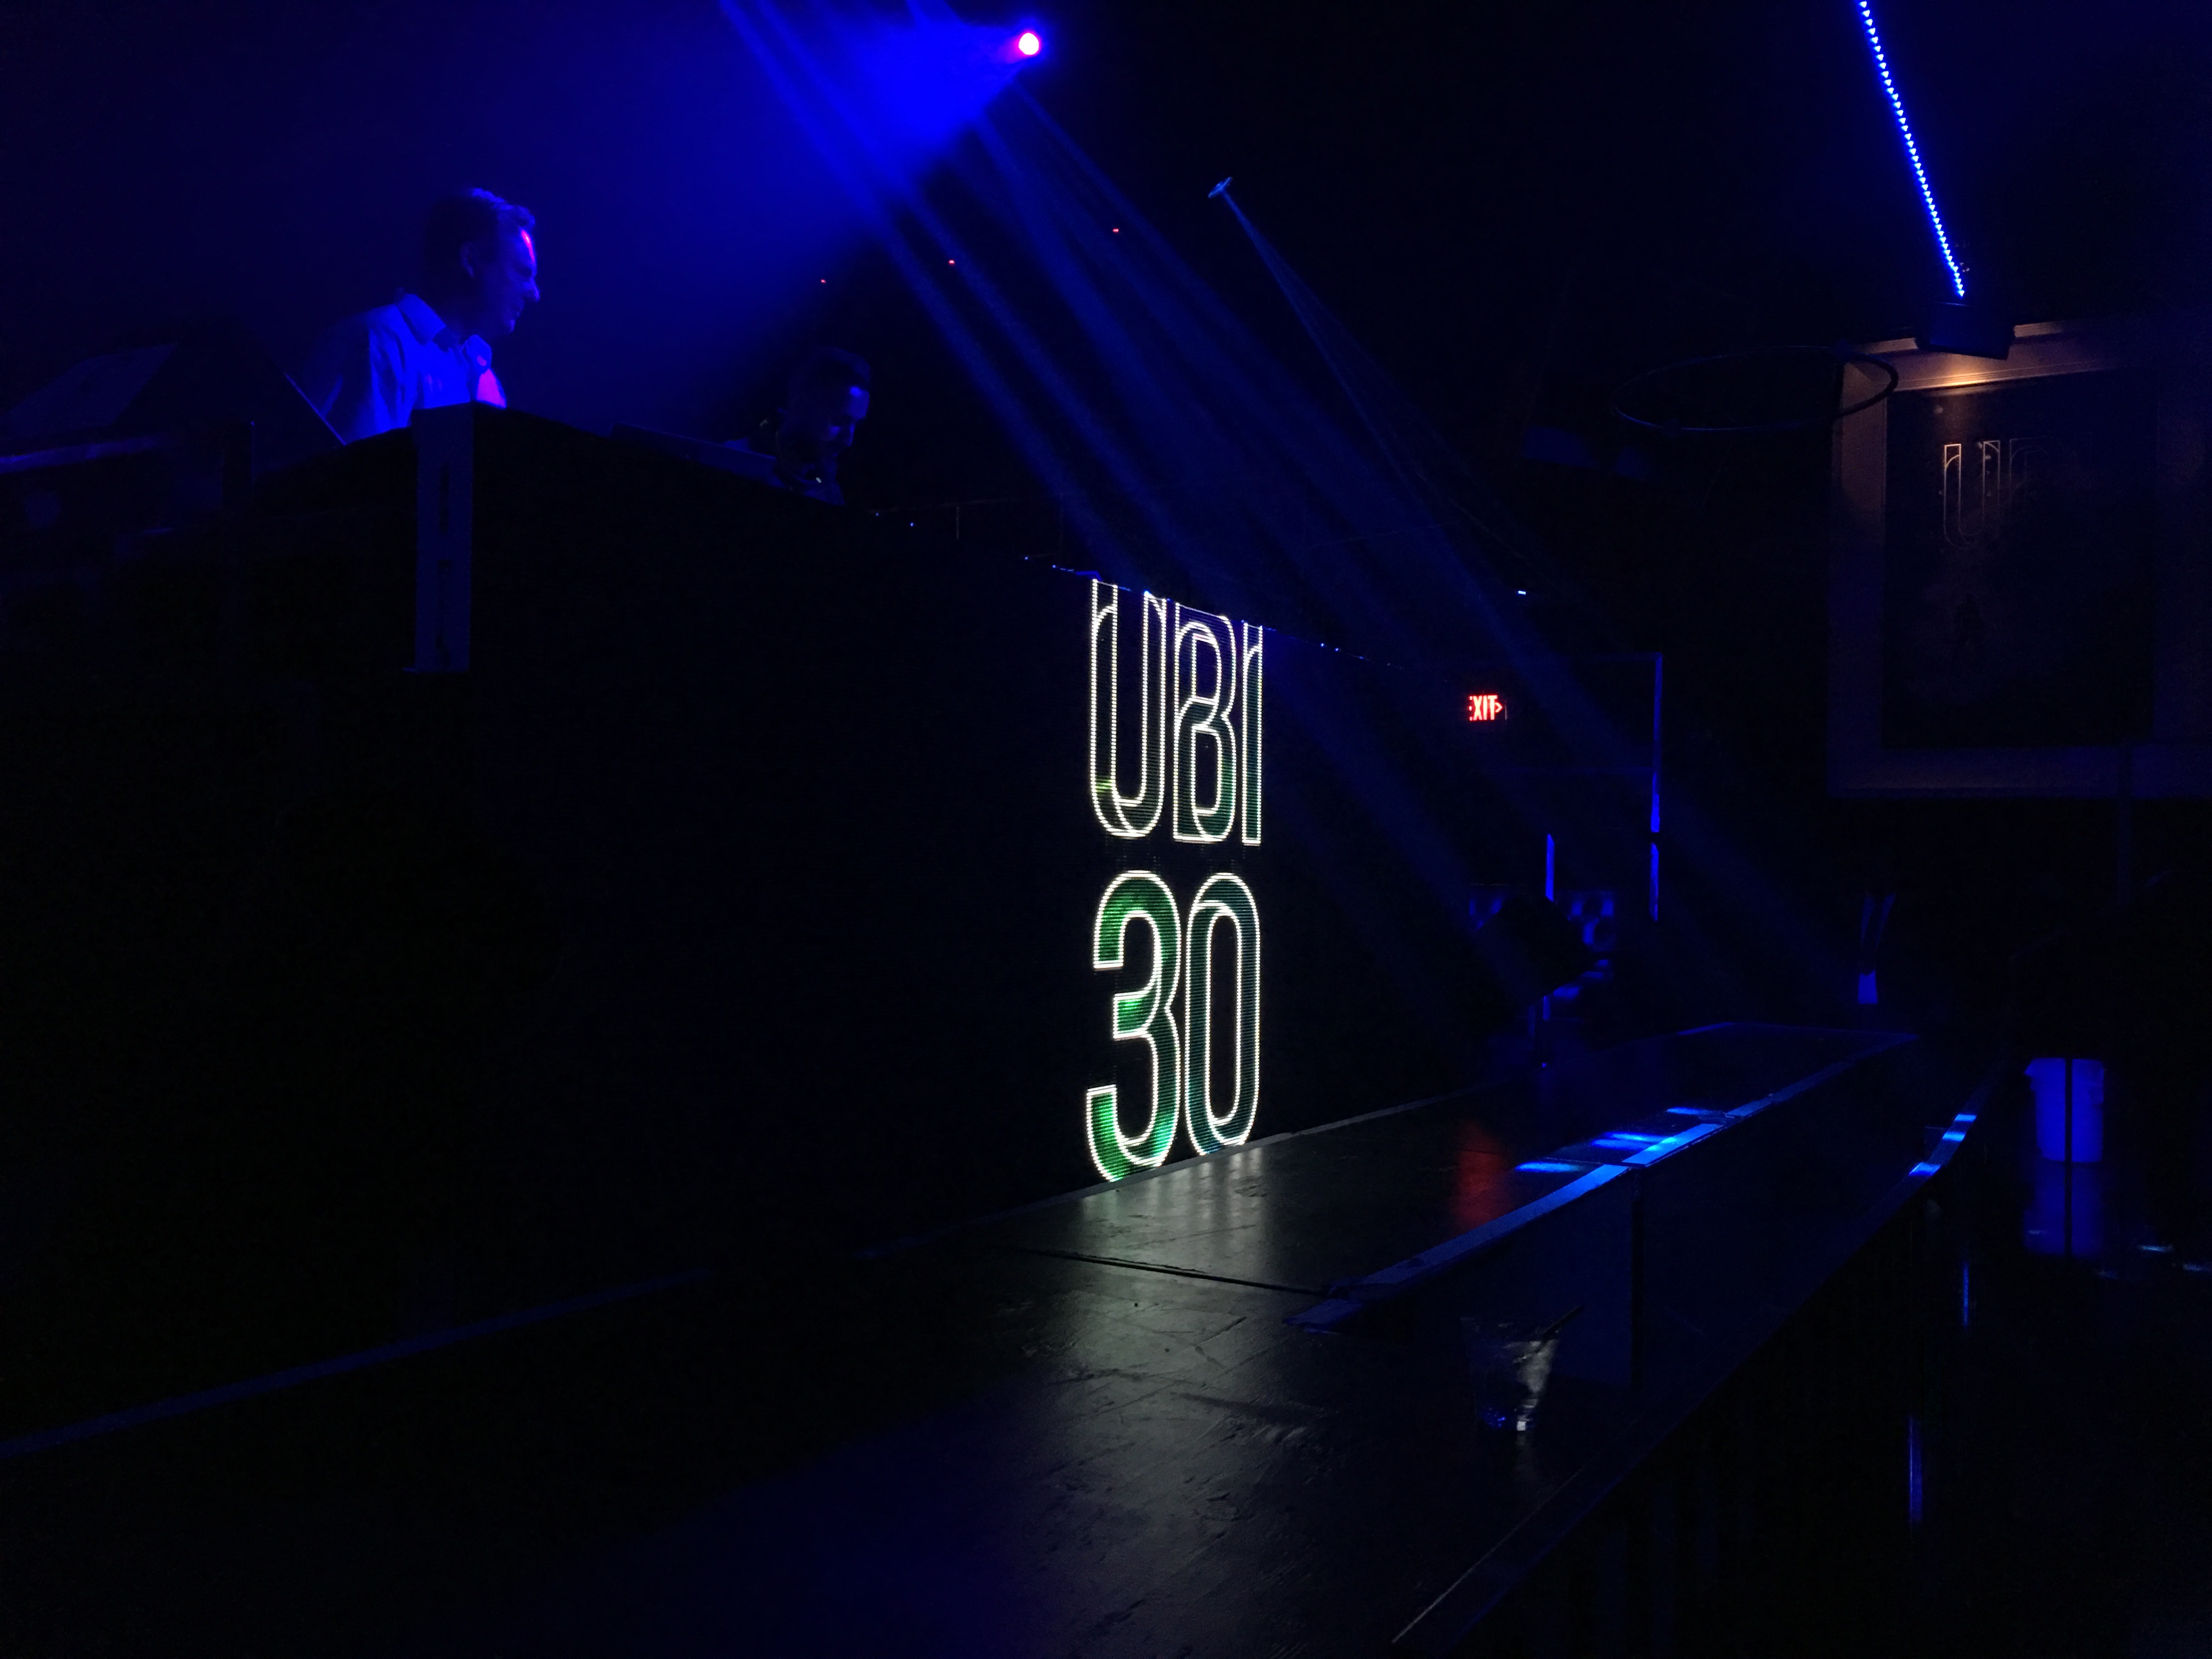 Ubi 30 Party in Hollywood / Interior - DJ Booth